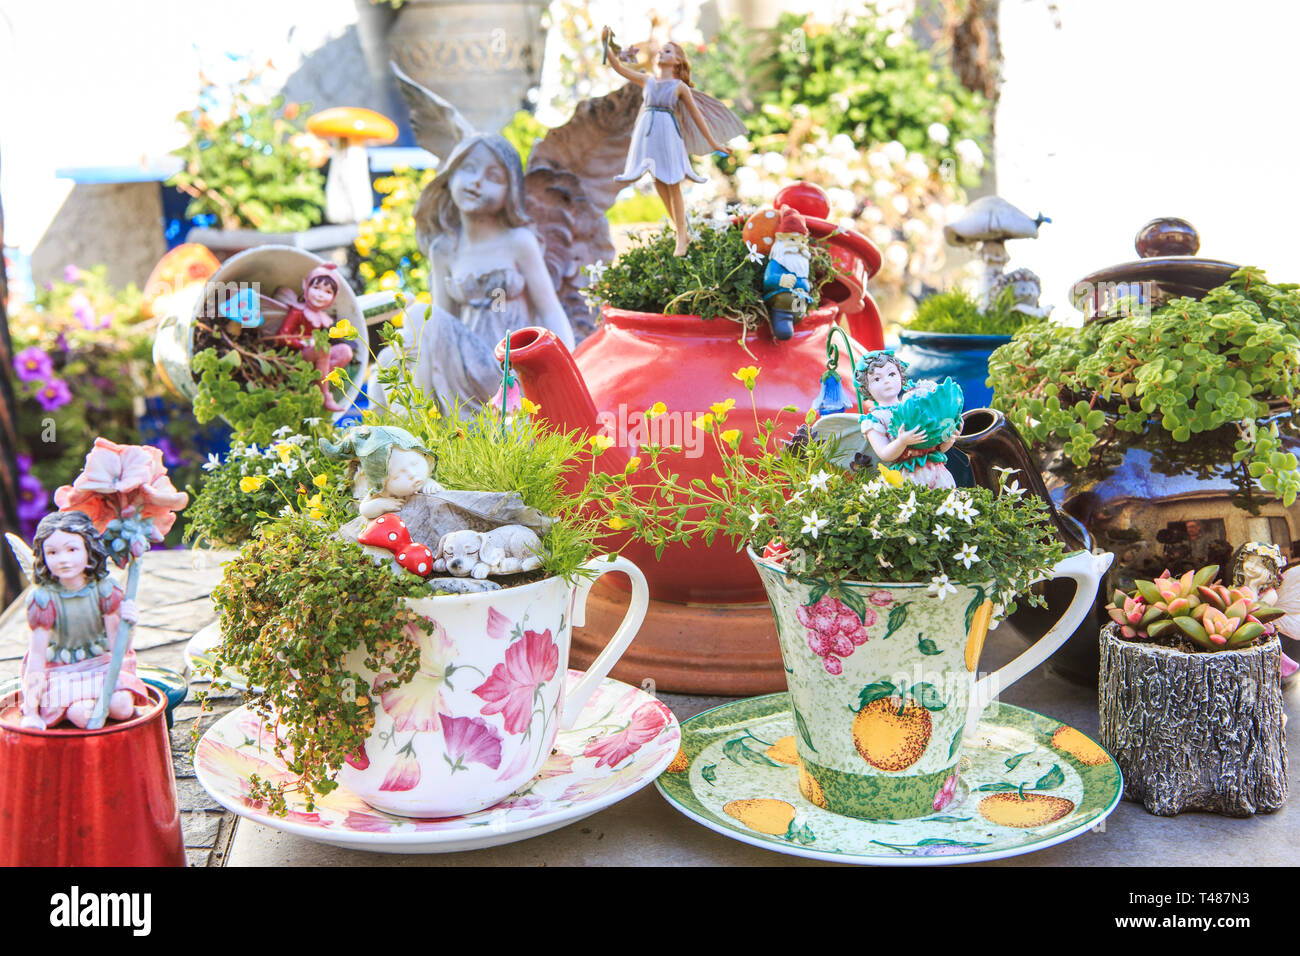 Miniature Table Top Fairy Garden With Teapots And Teacups Used As